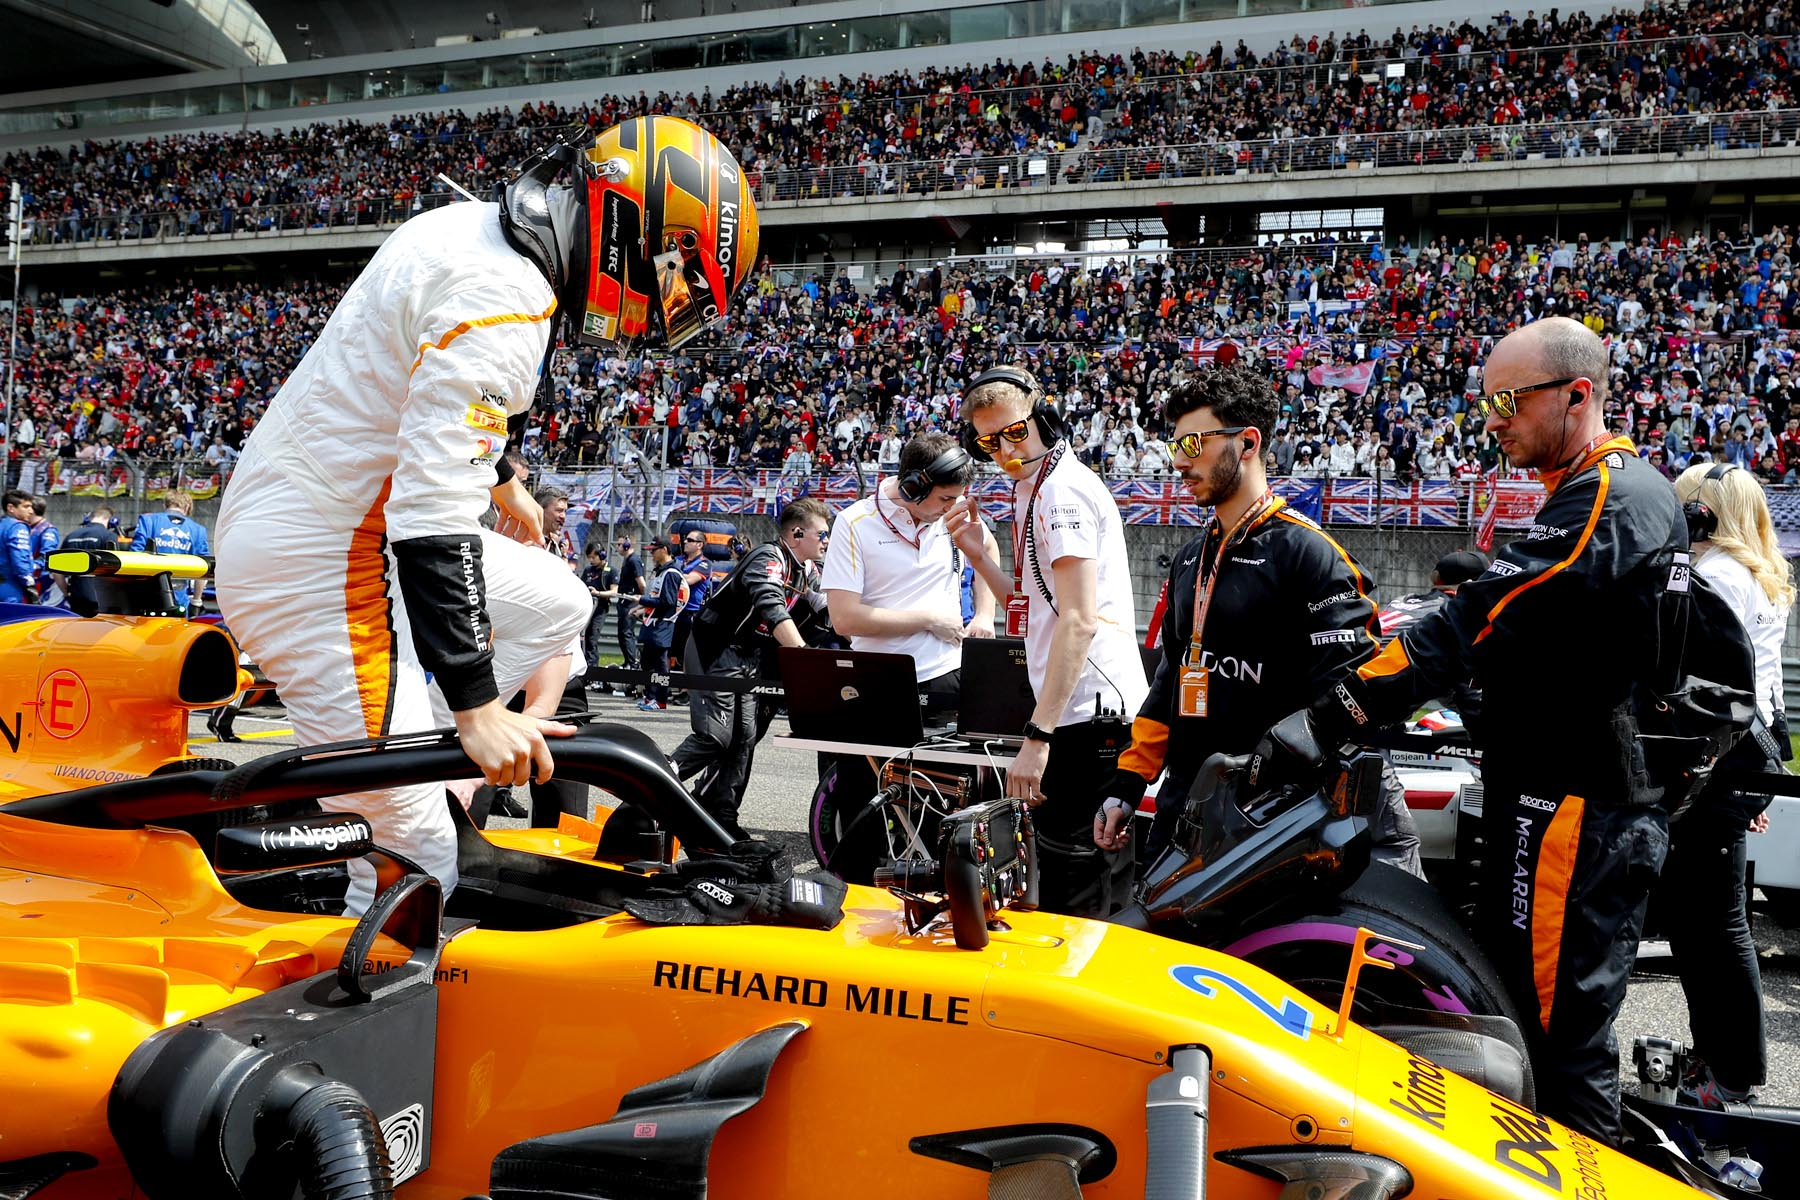 Stoffel Vandoorne gets out of his car on the grid at the 2018 Chinese Grand Prix.